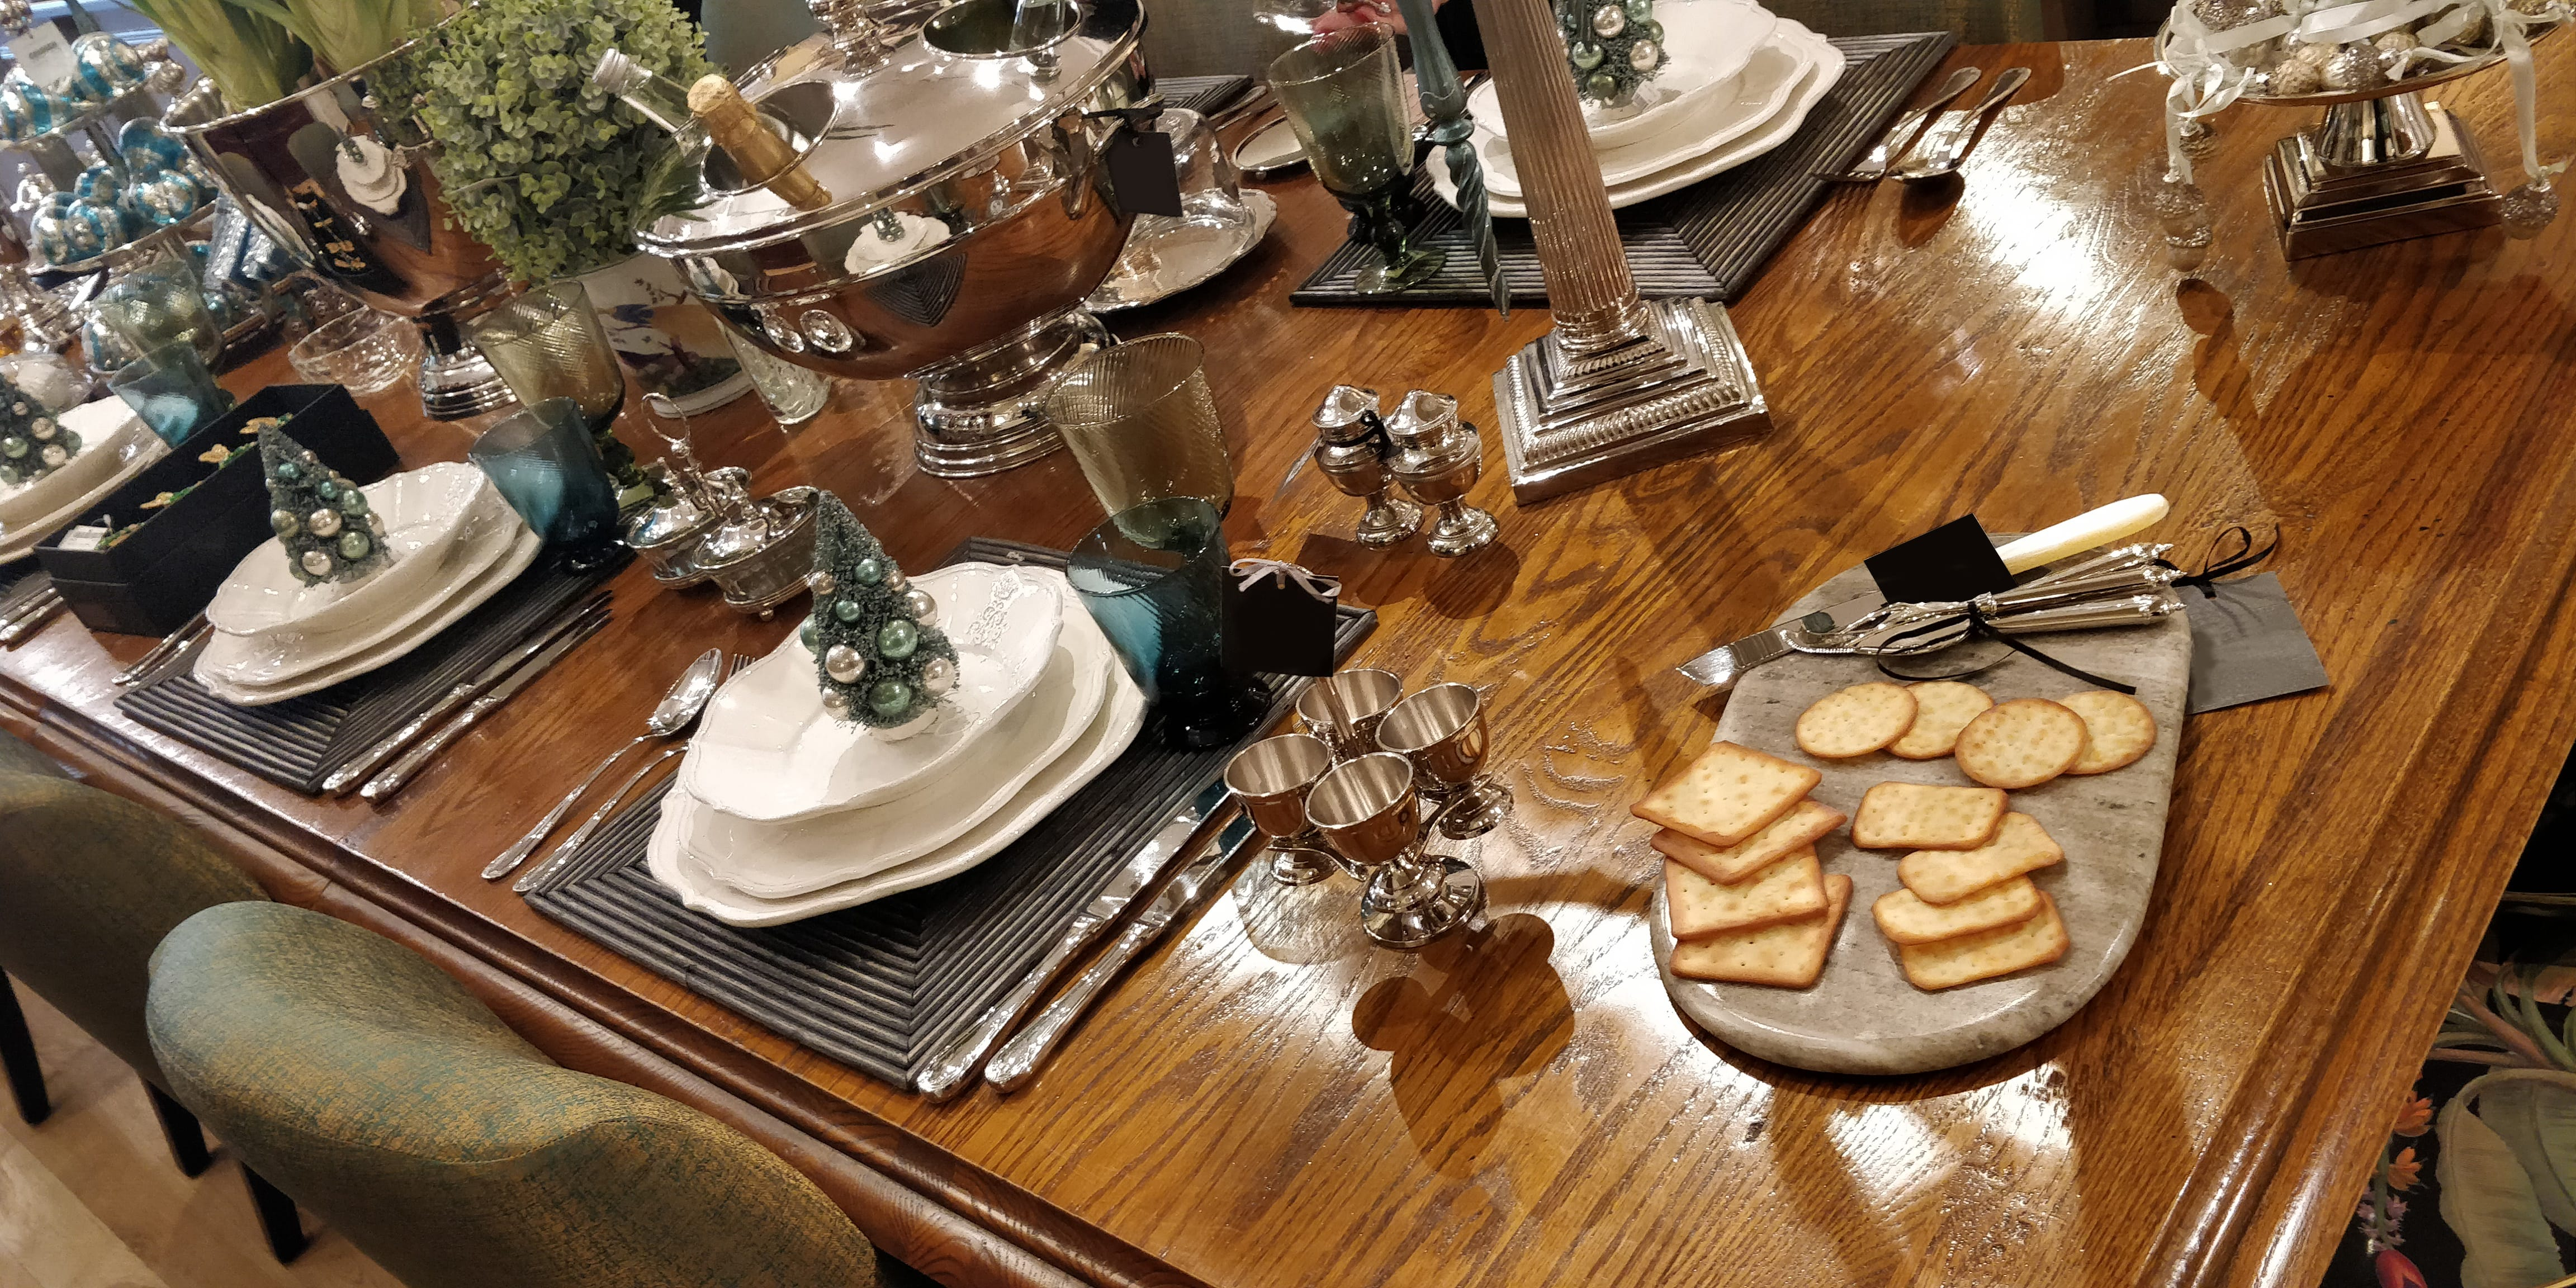 Christmas all wrapped up, elegant Christmas table setting, cheese board, decorations